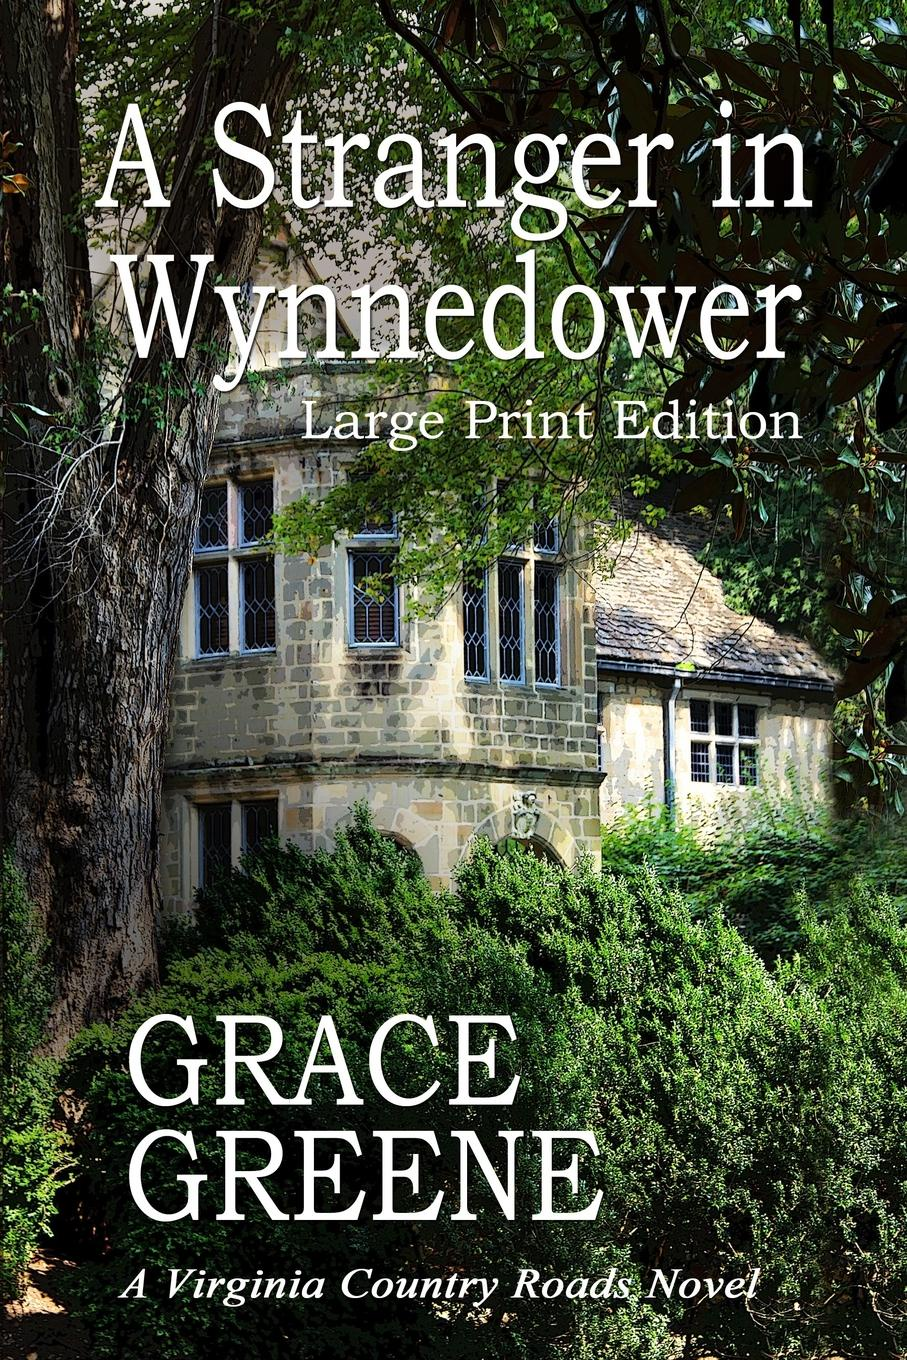 Grace Greene A Stranger in Wynnedower (Large Print). A Virginia Country Roads Novel